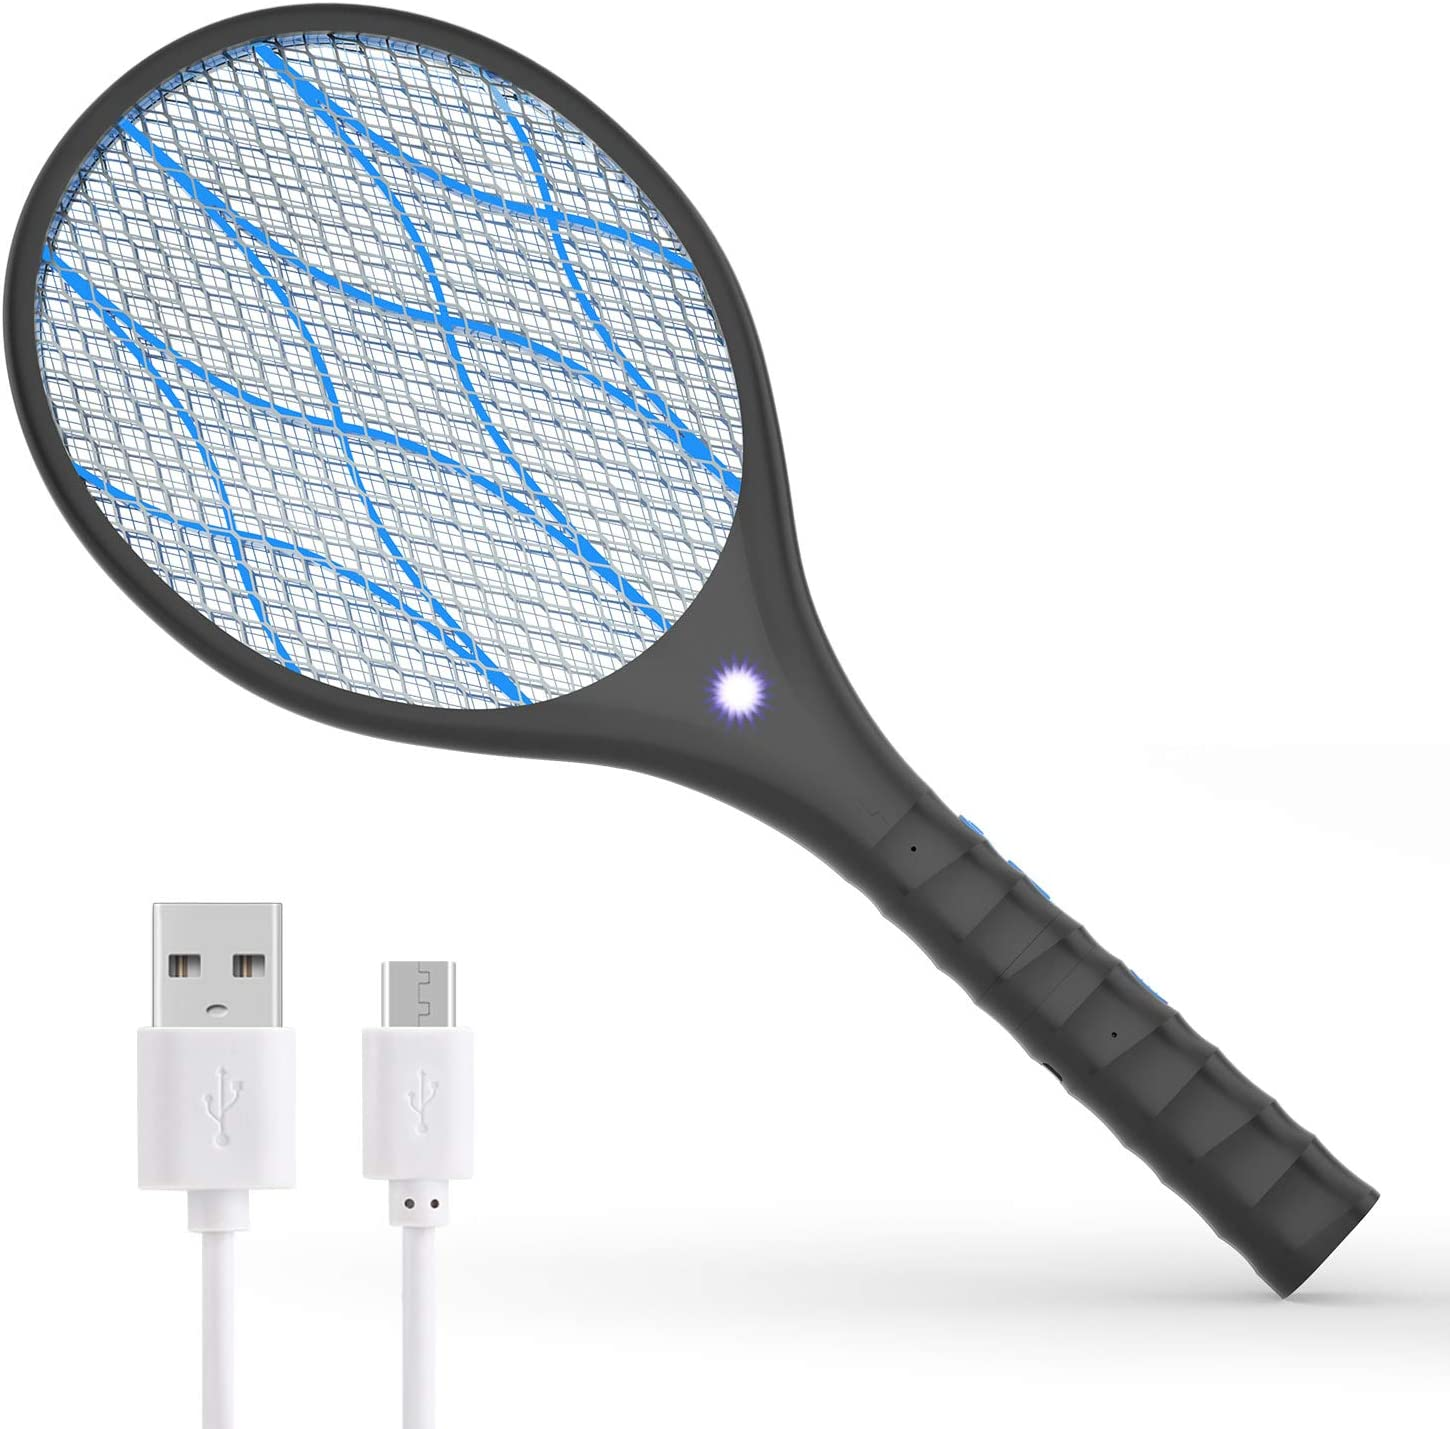 XDDIAS Electric Fly Swatter, USB Rechargeable Bug Zapper Bat Racket, Mosquito Killer Racquet with 4000 Volt/Removable Flashlight for Indoor Outdoor